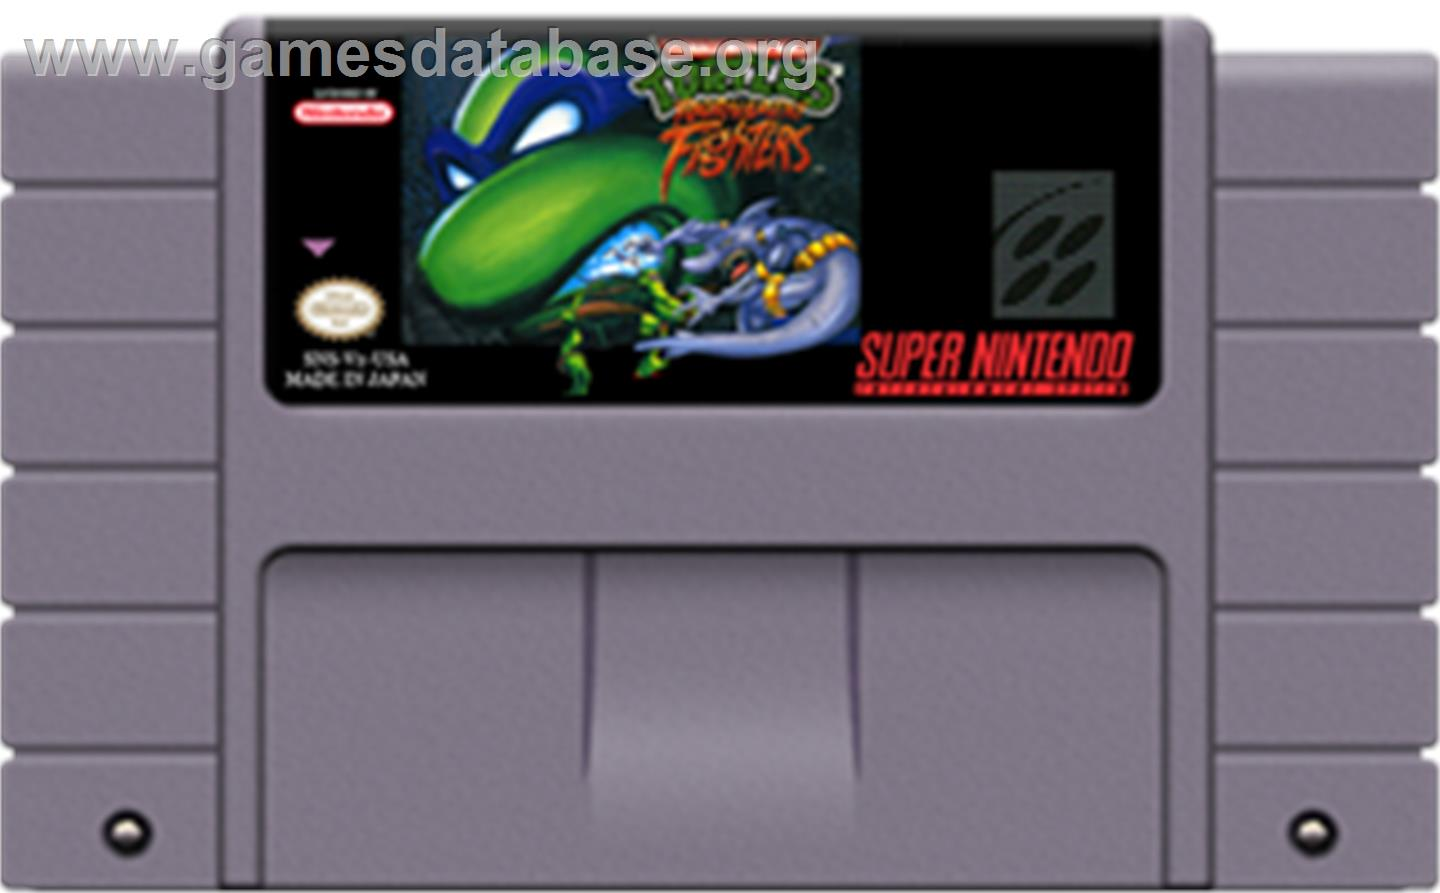 Teenage Mutant Ninja Turtles: Tournament Fighters - Nintendo SNES - Artwork - Cartridge